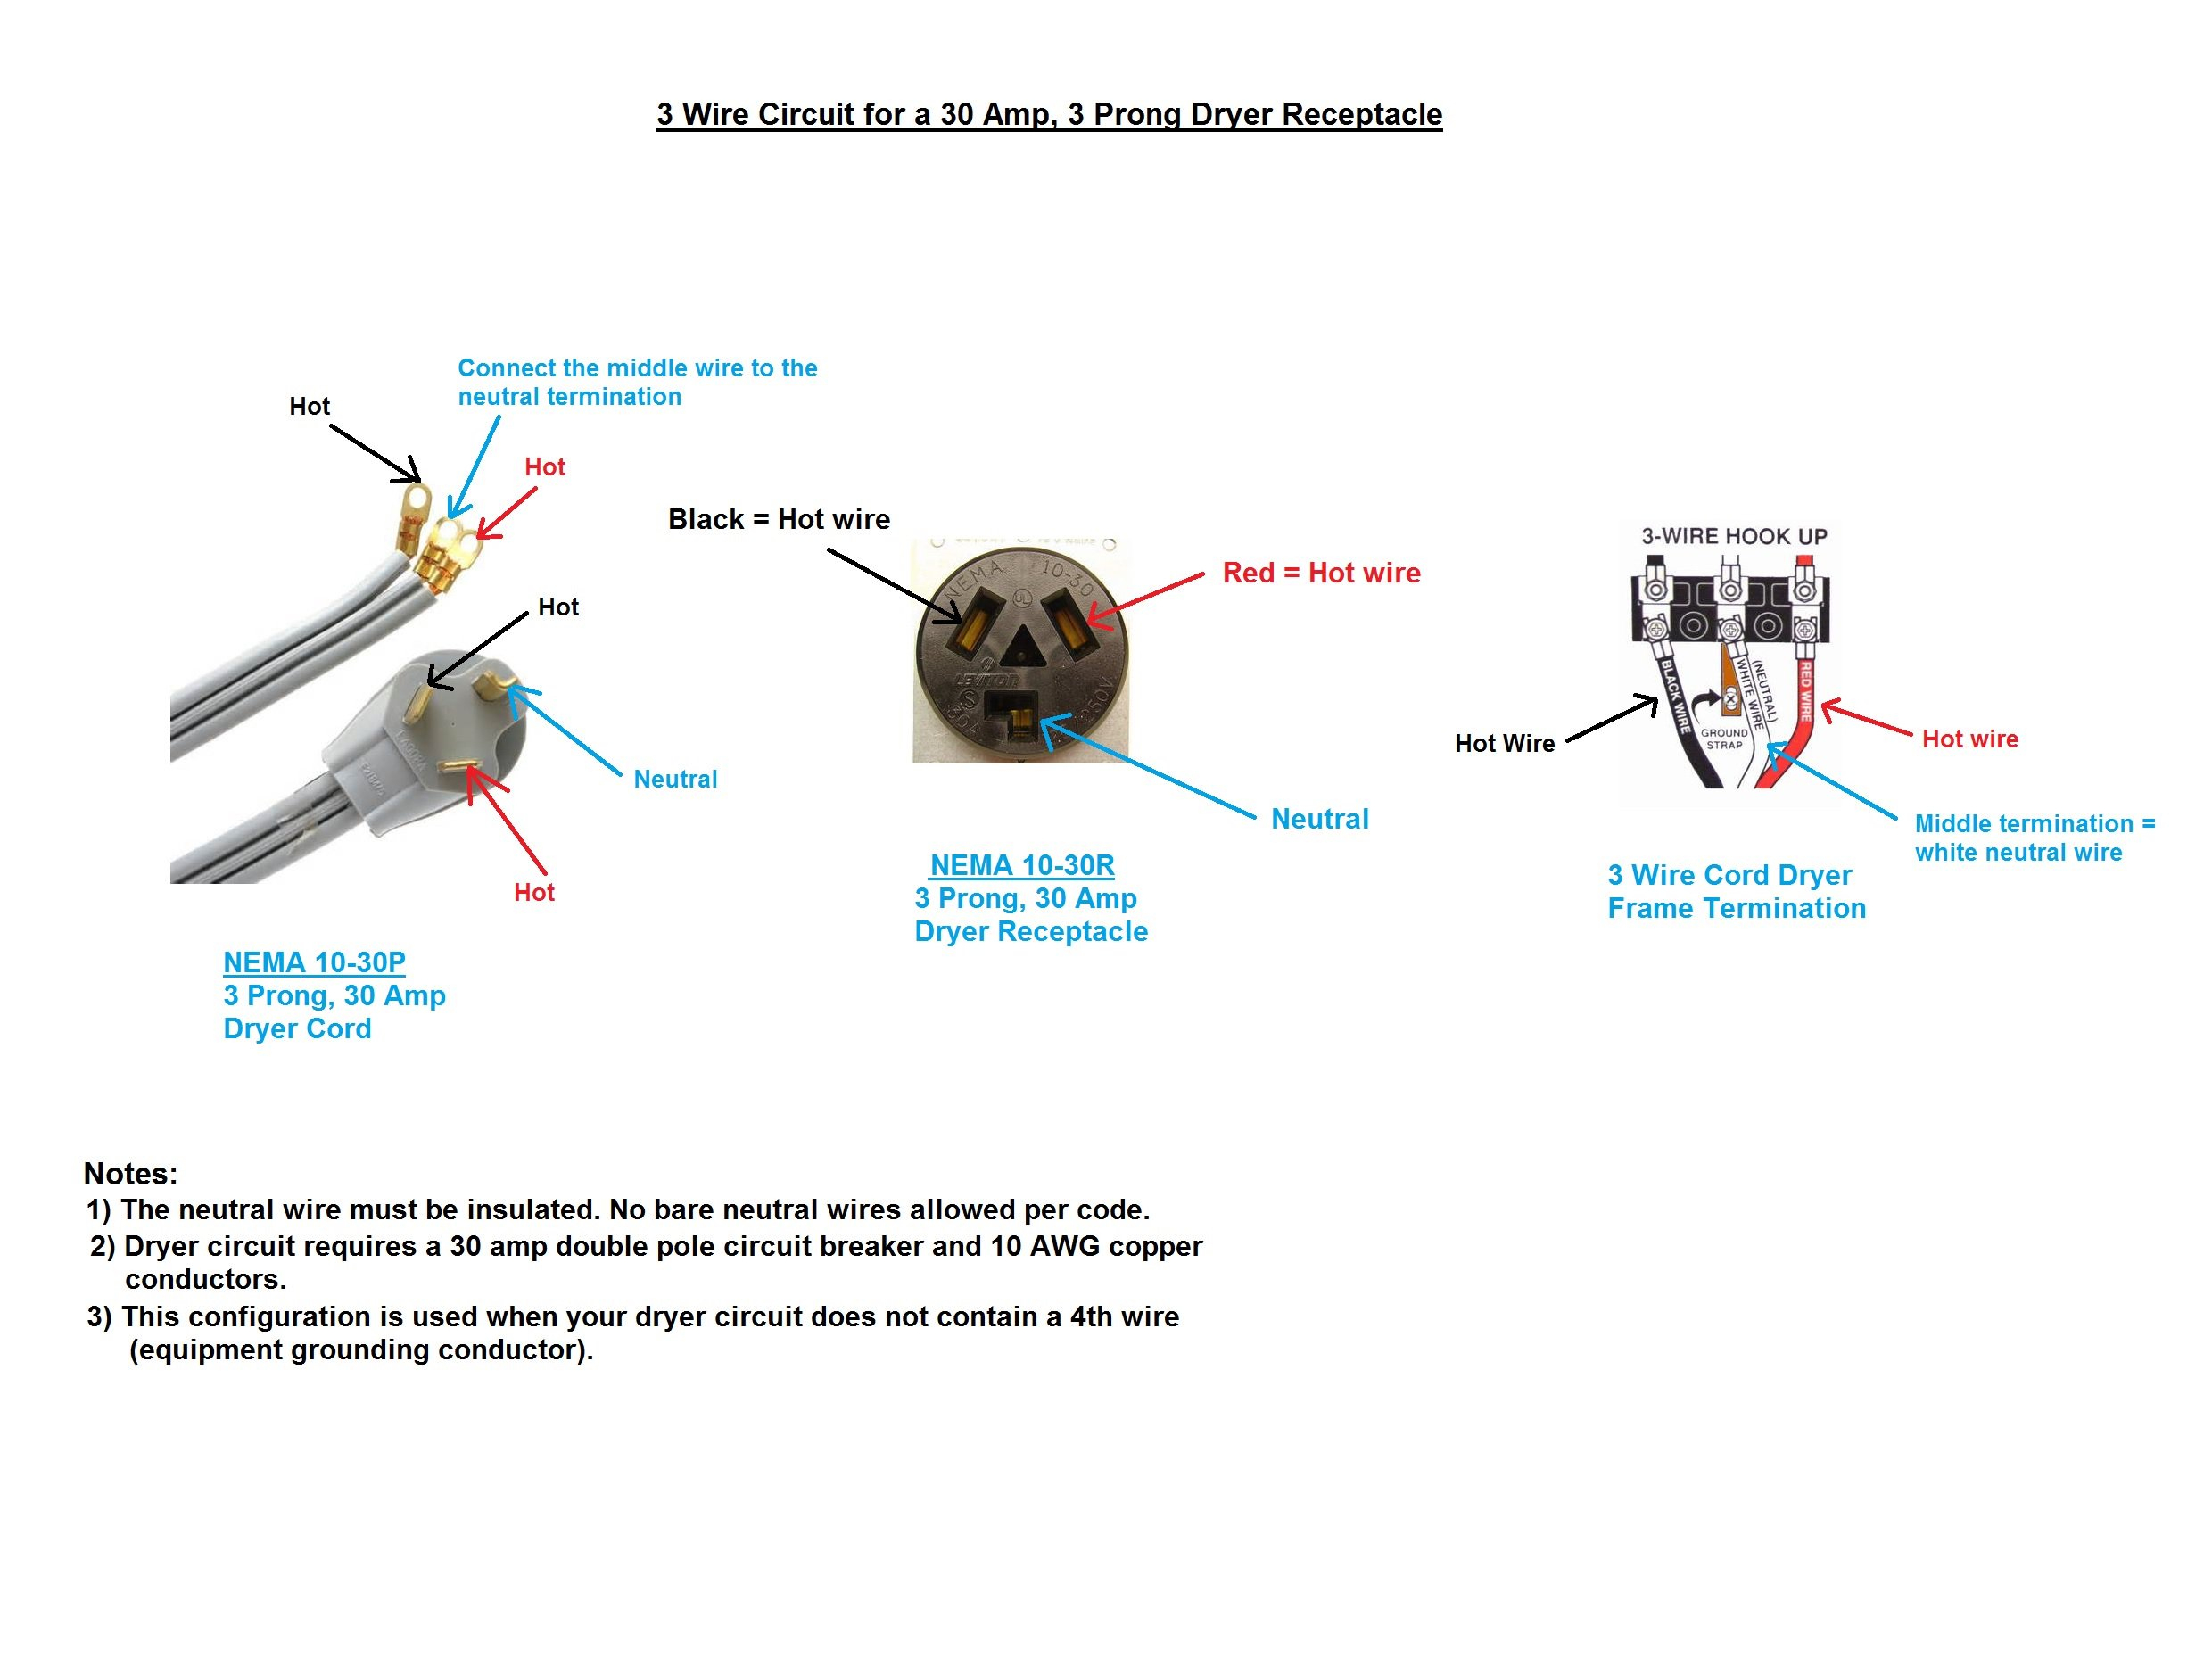 Extension Cord 3 Wire Diagram | Manual E-Books - Extension Cord Wiring Diagram